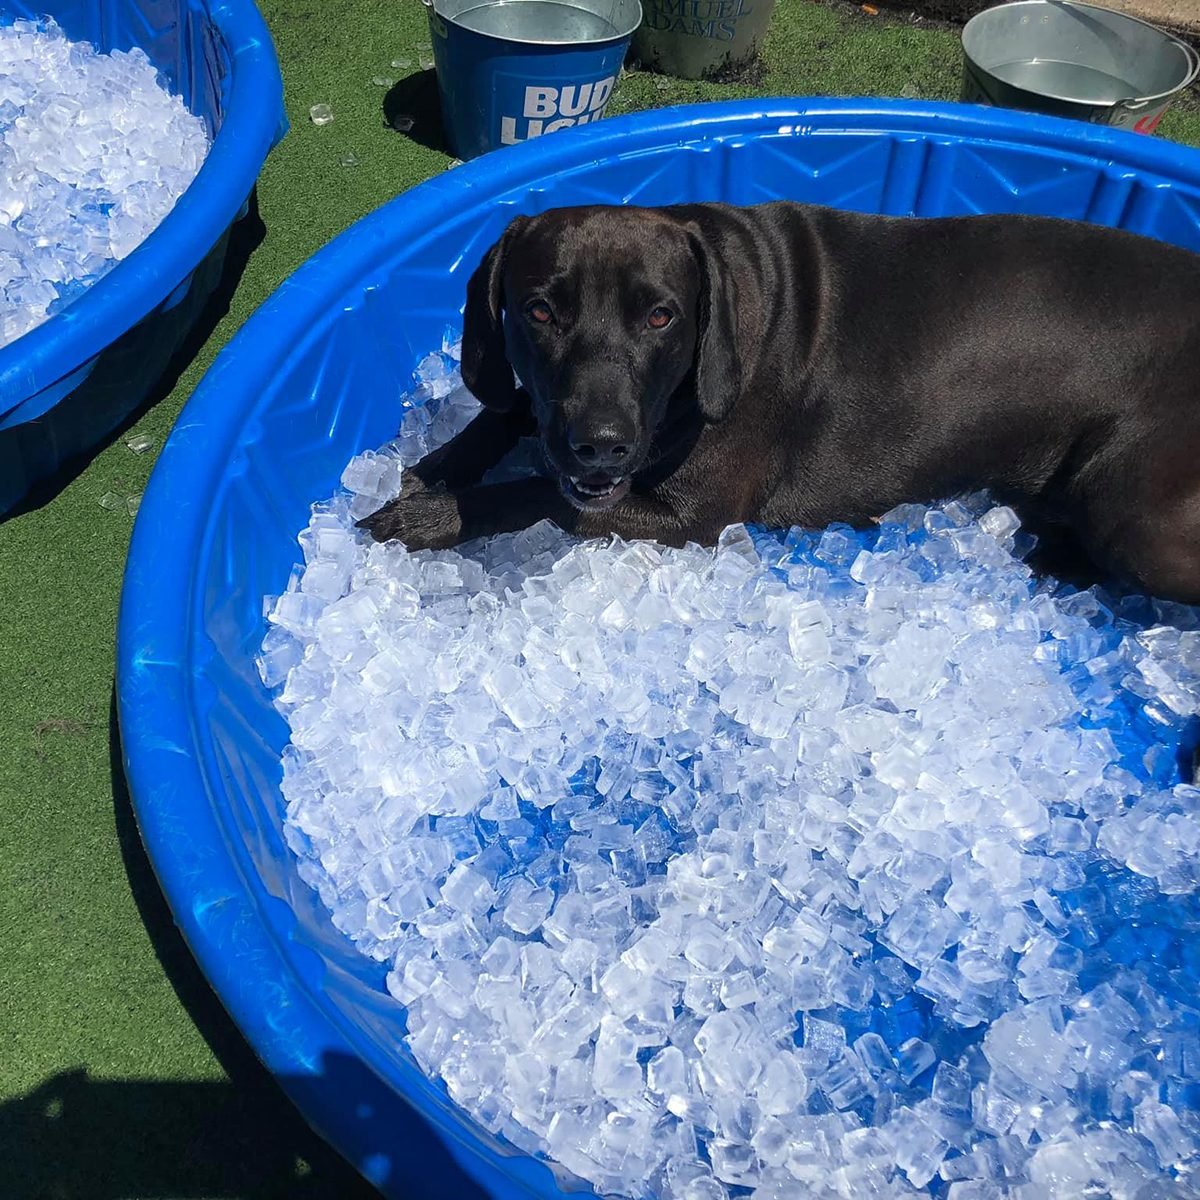 Dog laying in a kiddie pool of ice